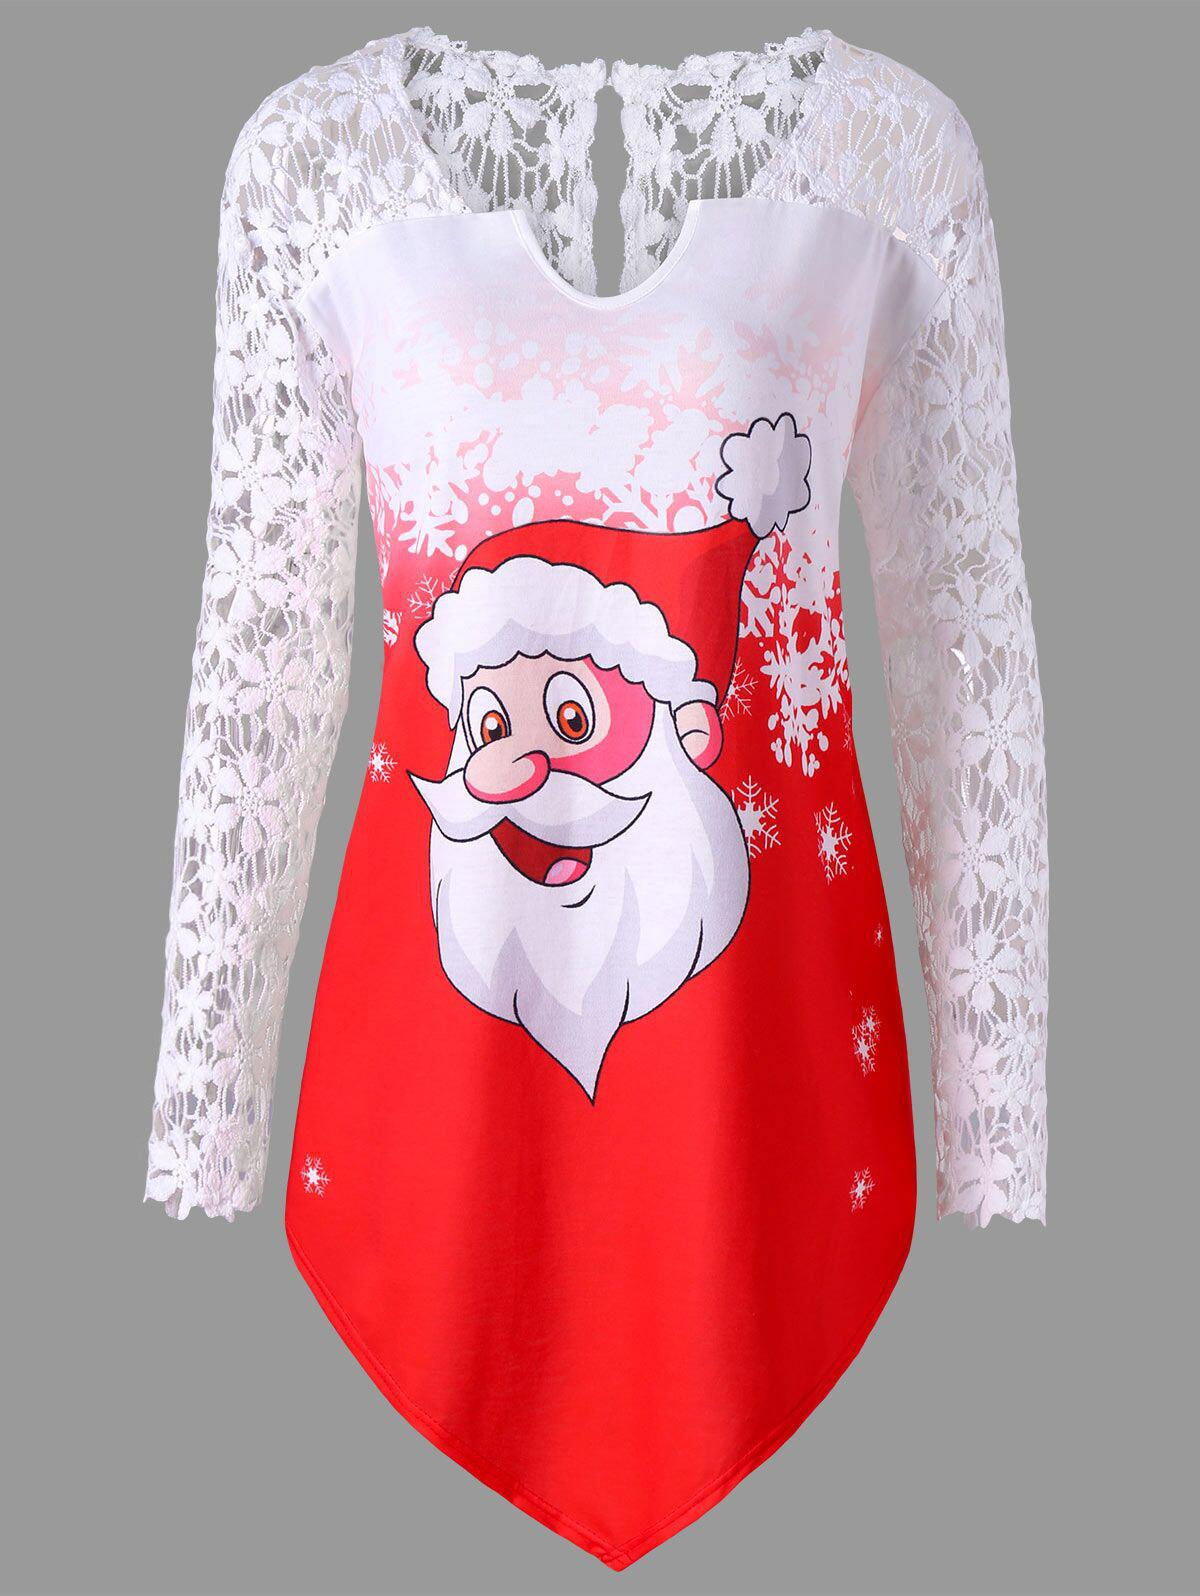 Christmas Plus Size Santa Claus Lace Trim T-shirtWOMEN<br><br>Size: 3XL; Color: RED; Material: Polyester,Spandex; Shirt Length: Long; Sleeve Length: Full; Collar: V-Neck; Style: Casual; Season: Fall,Spring; Embellishment: Lace; Pattern Type: Character; Weight: 0.3000kg; Package Contents: 1 x T-shirt;